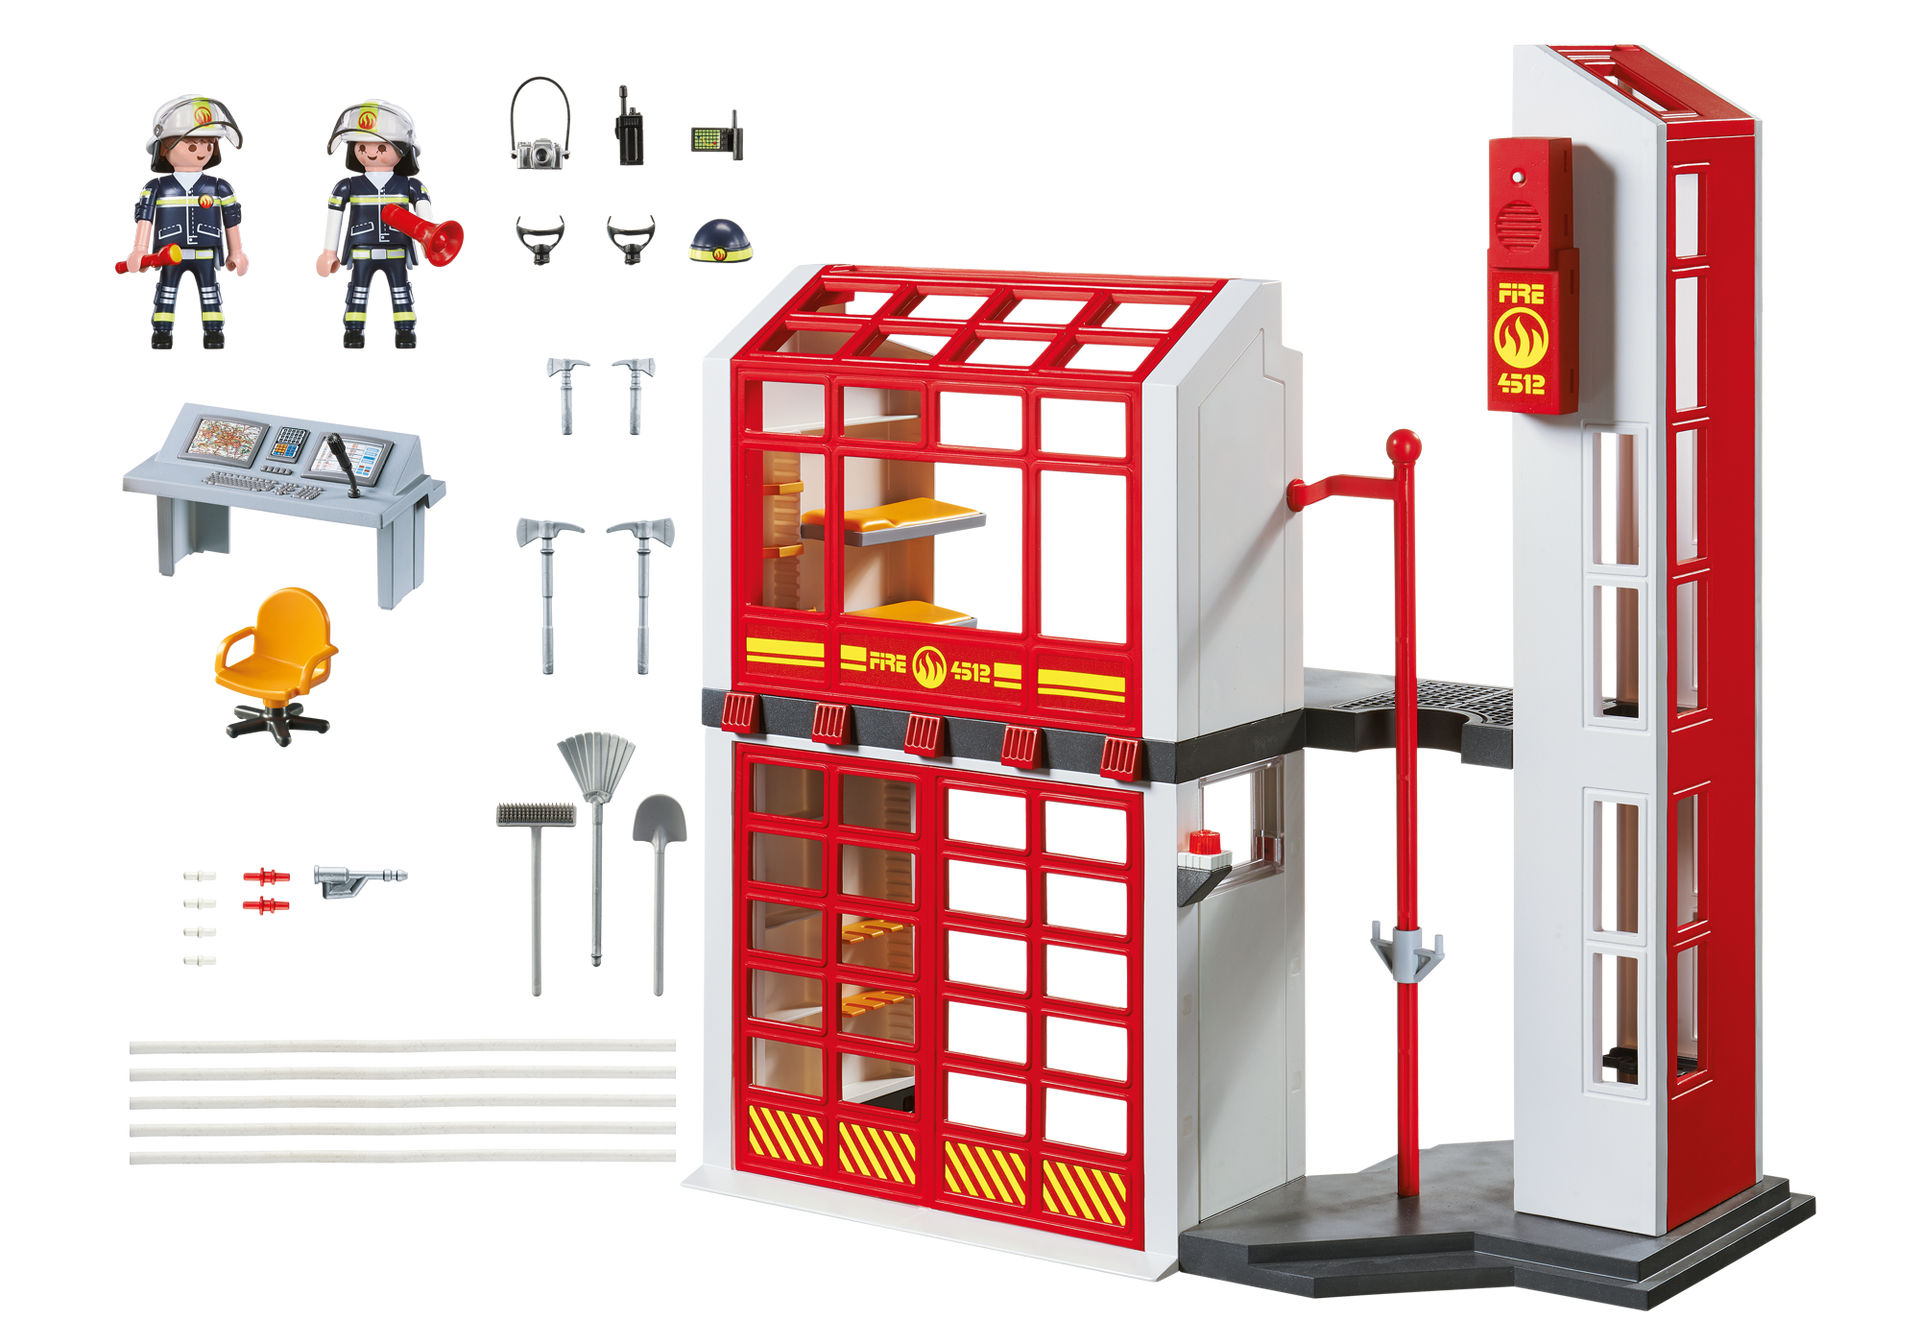 caserne de pompiers avec alarme 5361 playmobil france. Black Bedroom Furniture Sets. Home Design Ideas